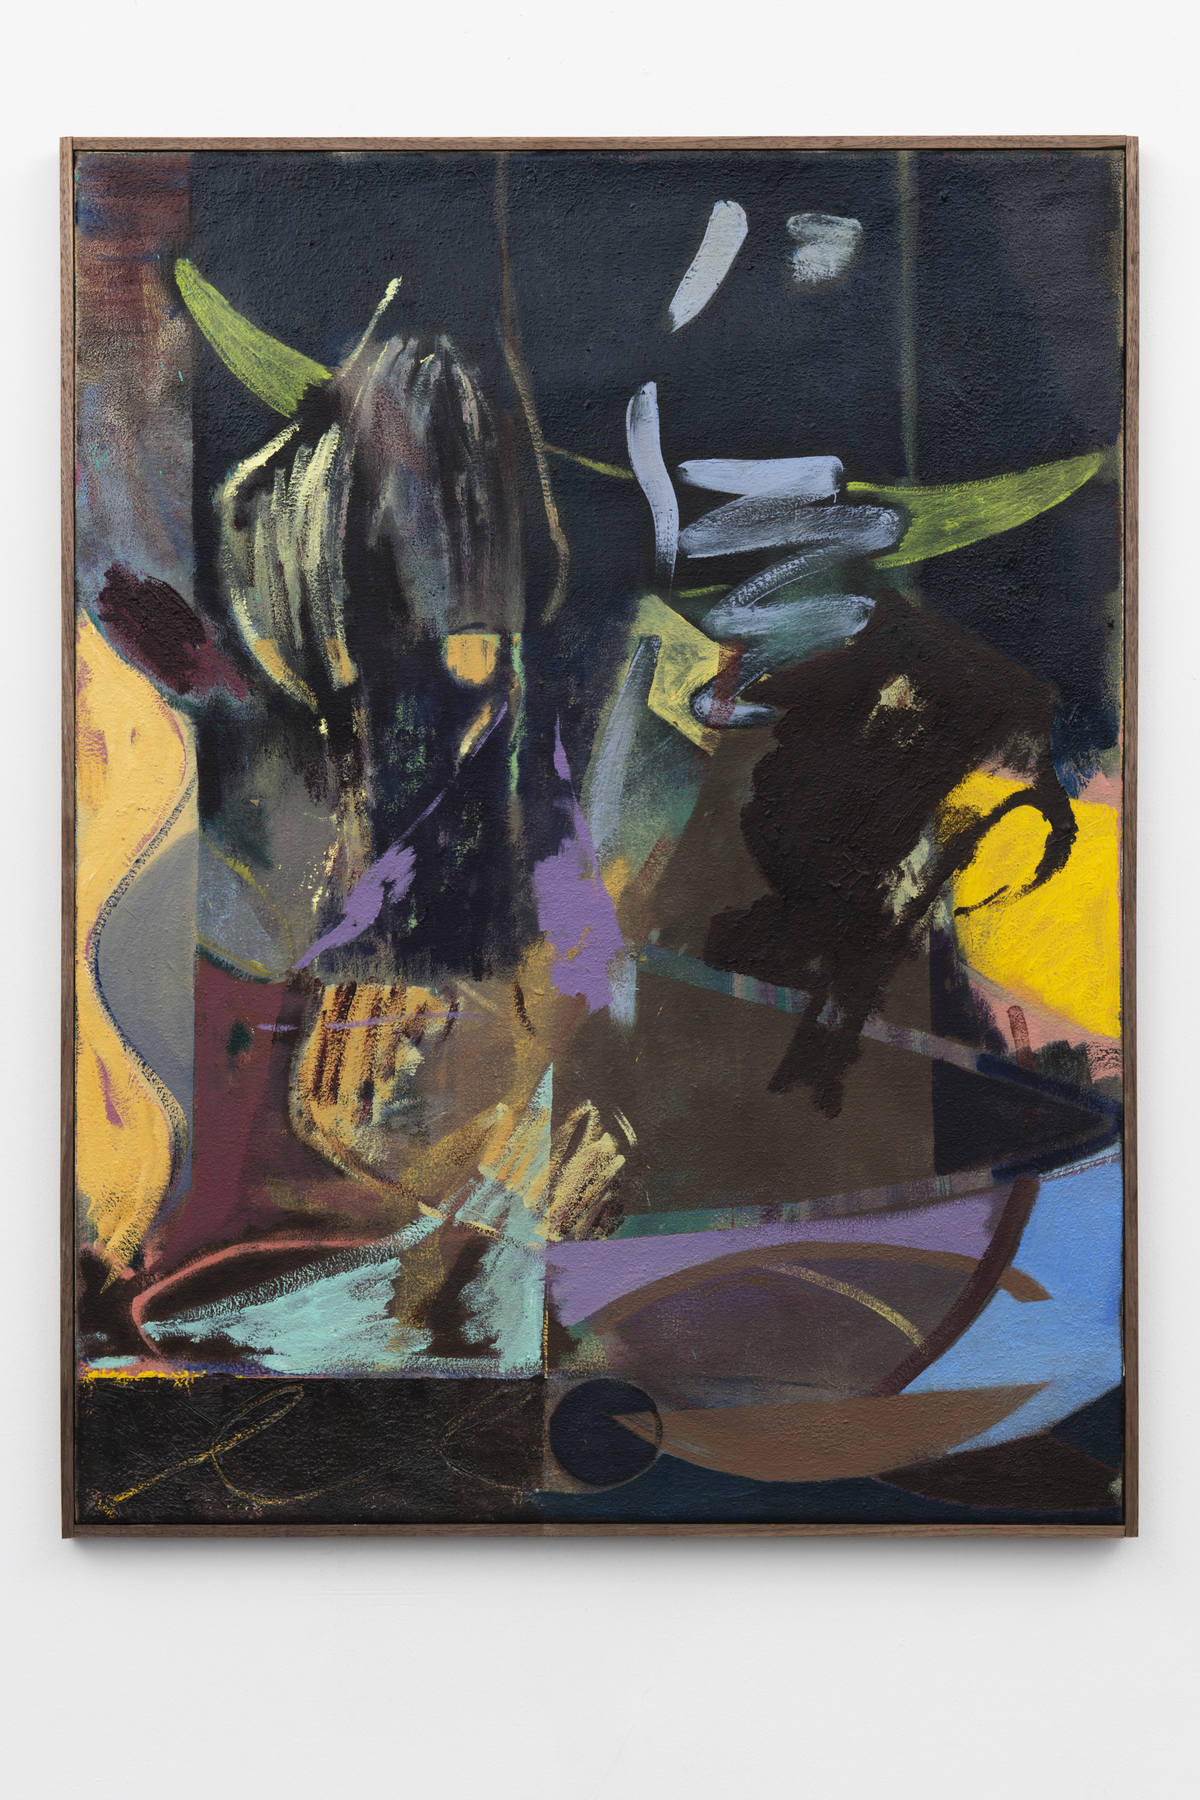 2-Jon-Pilkington-To-Be-Titled-Oil, wax crayon and lacquer on canvas -image courtesy CINNNAMON Rotterdam